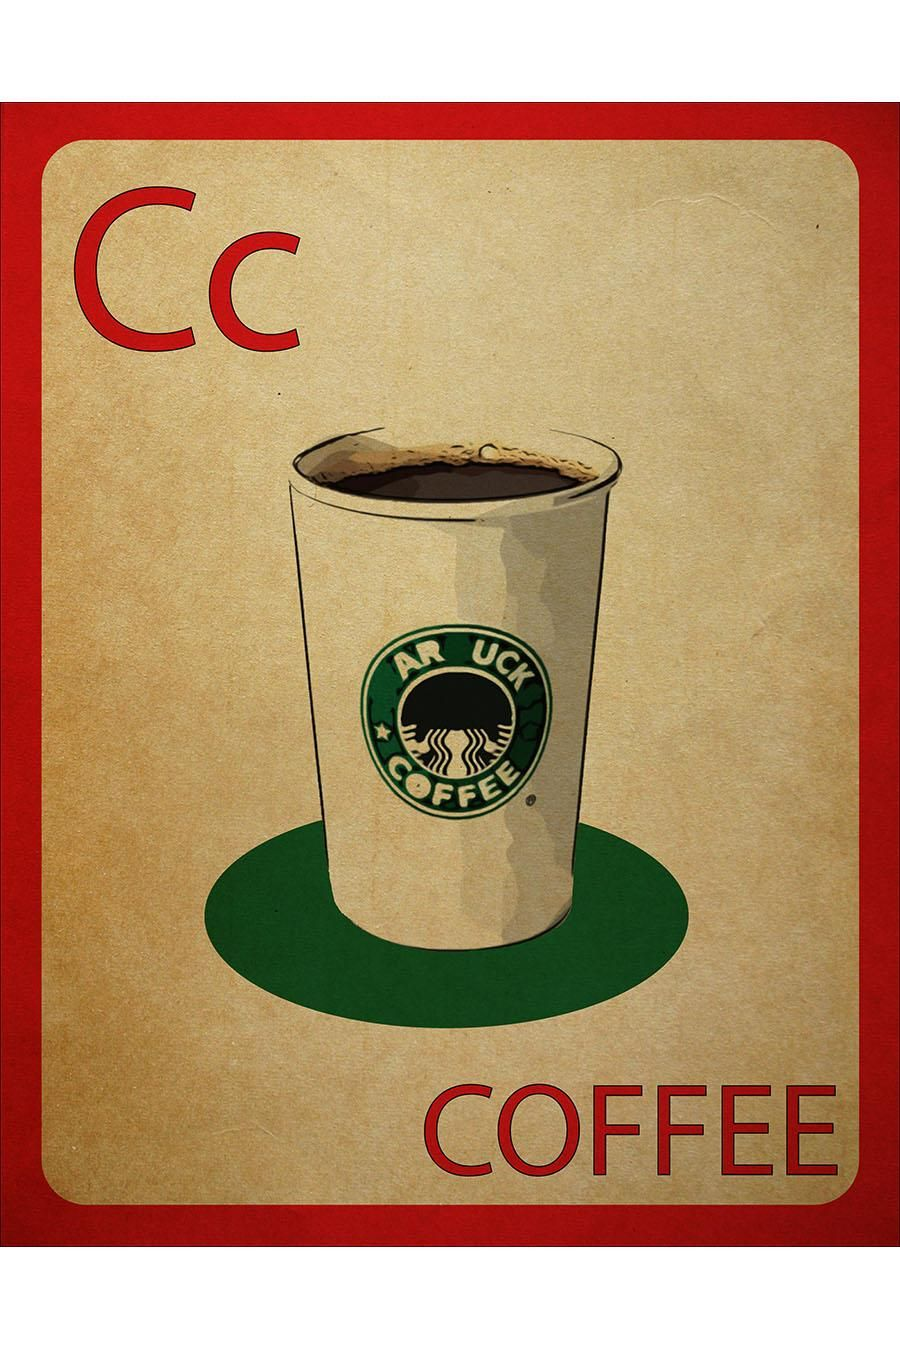 Cc is for.....Coffee! Flashcard Poster. Coffee cafe